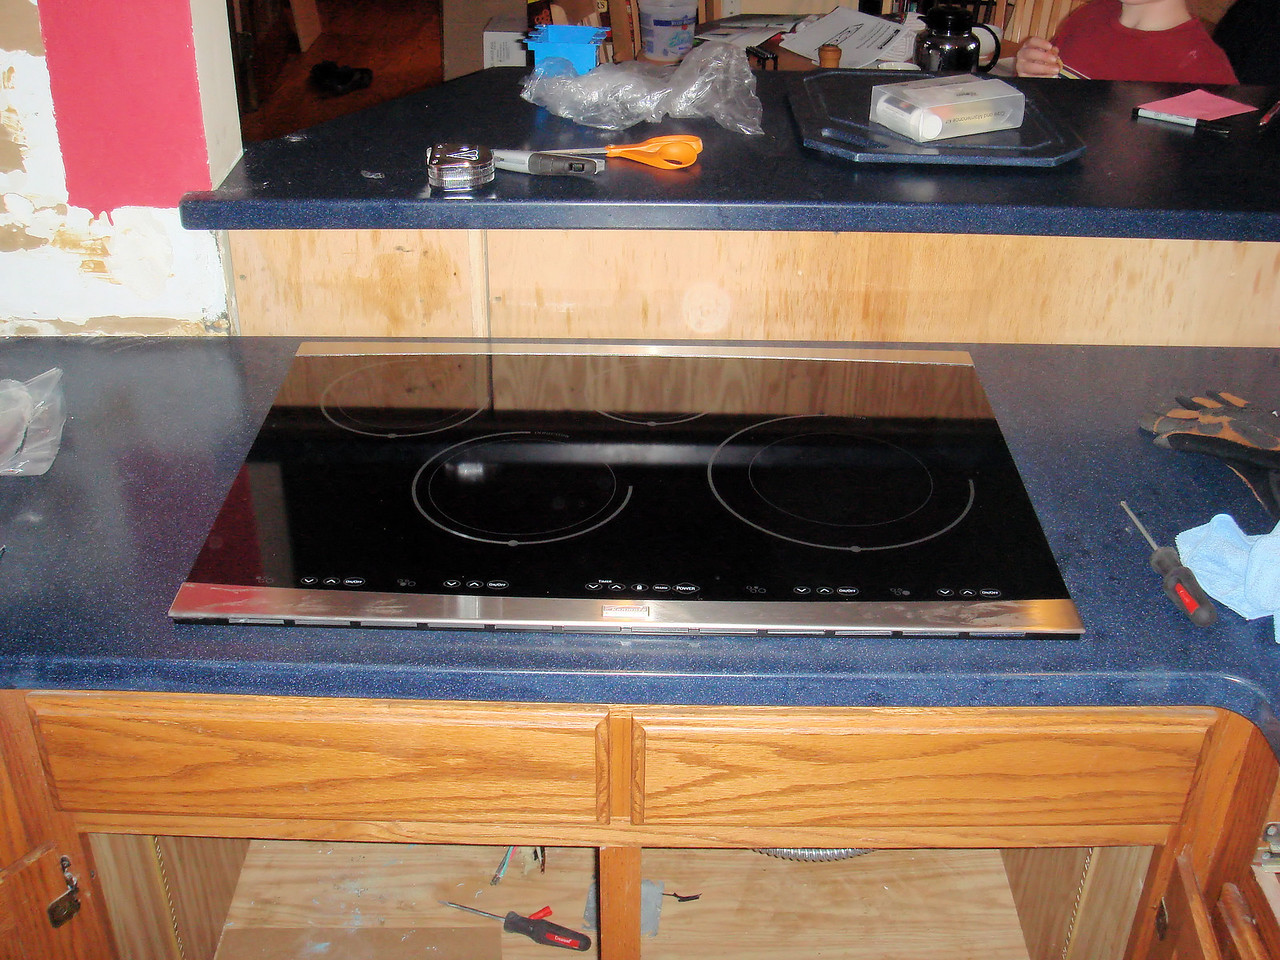 The new stove in the new counter top